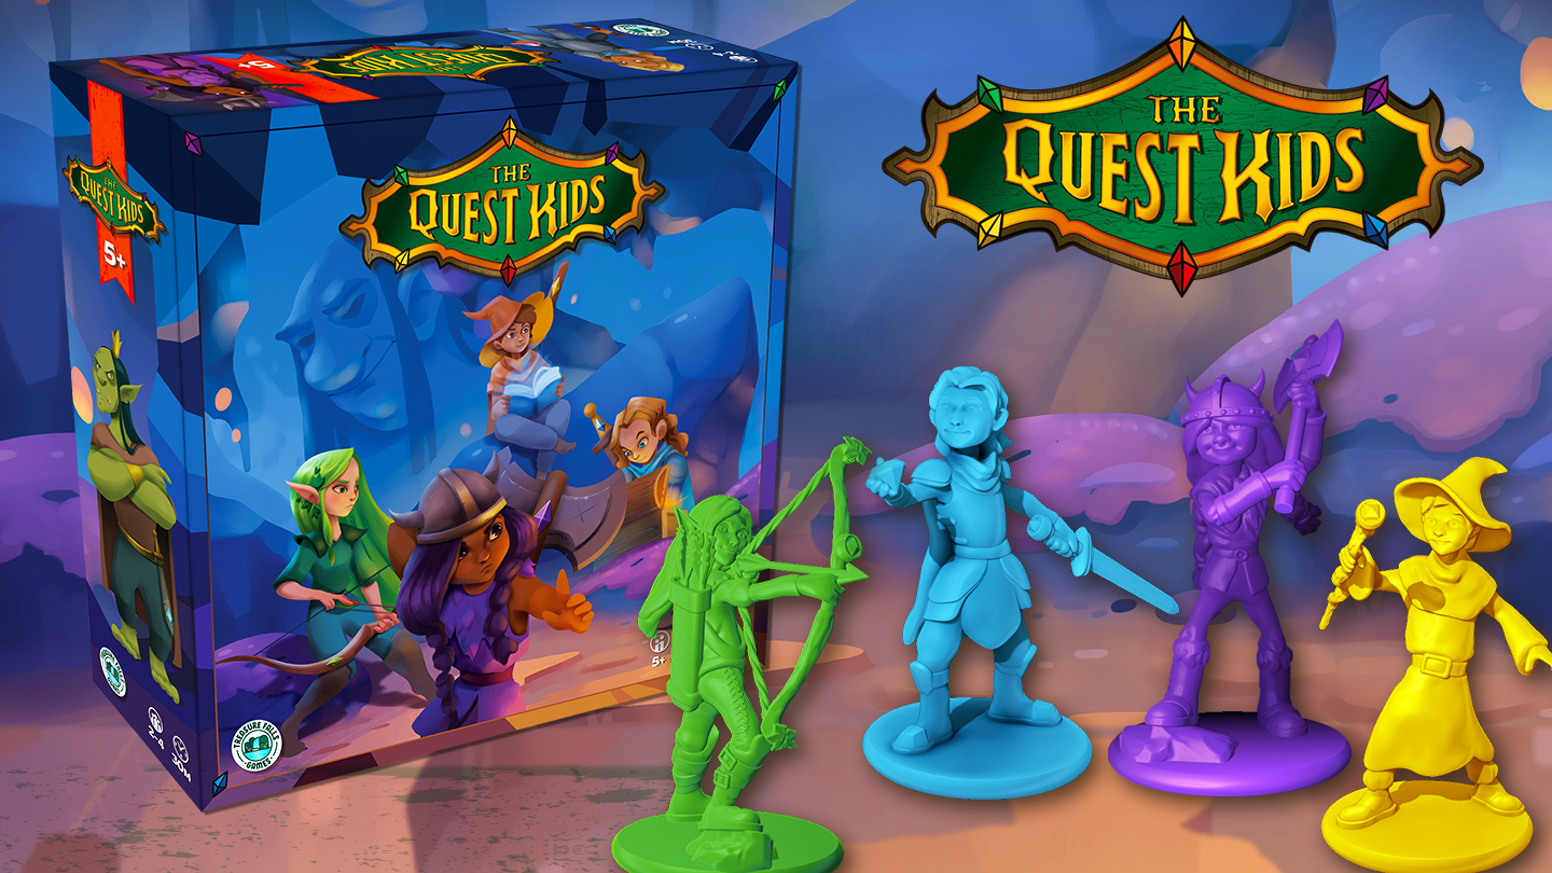 A tabletop game of fantasy adventure for heroes 5 years old and up.